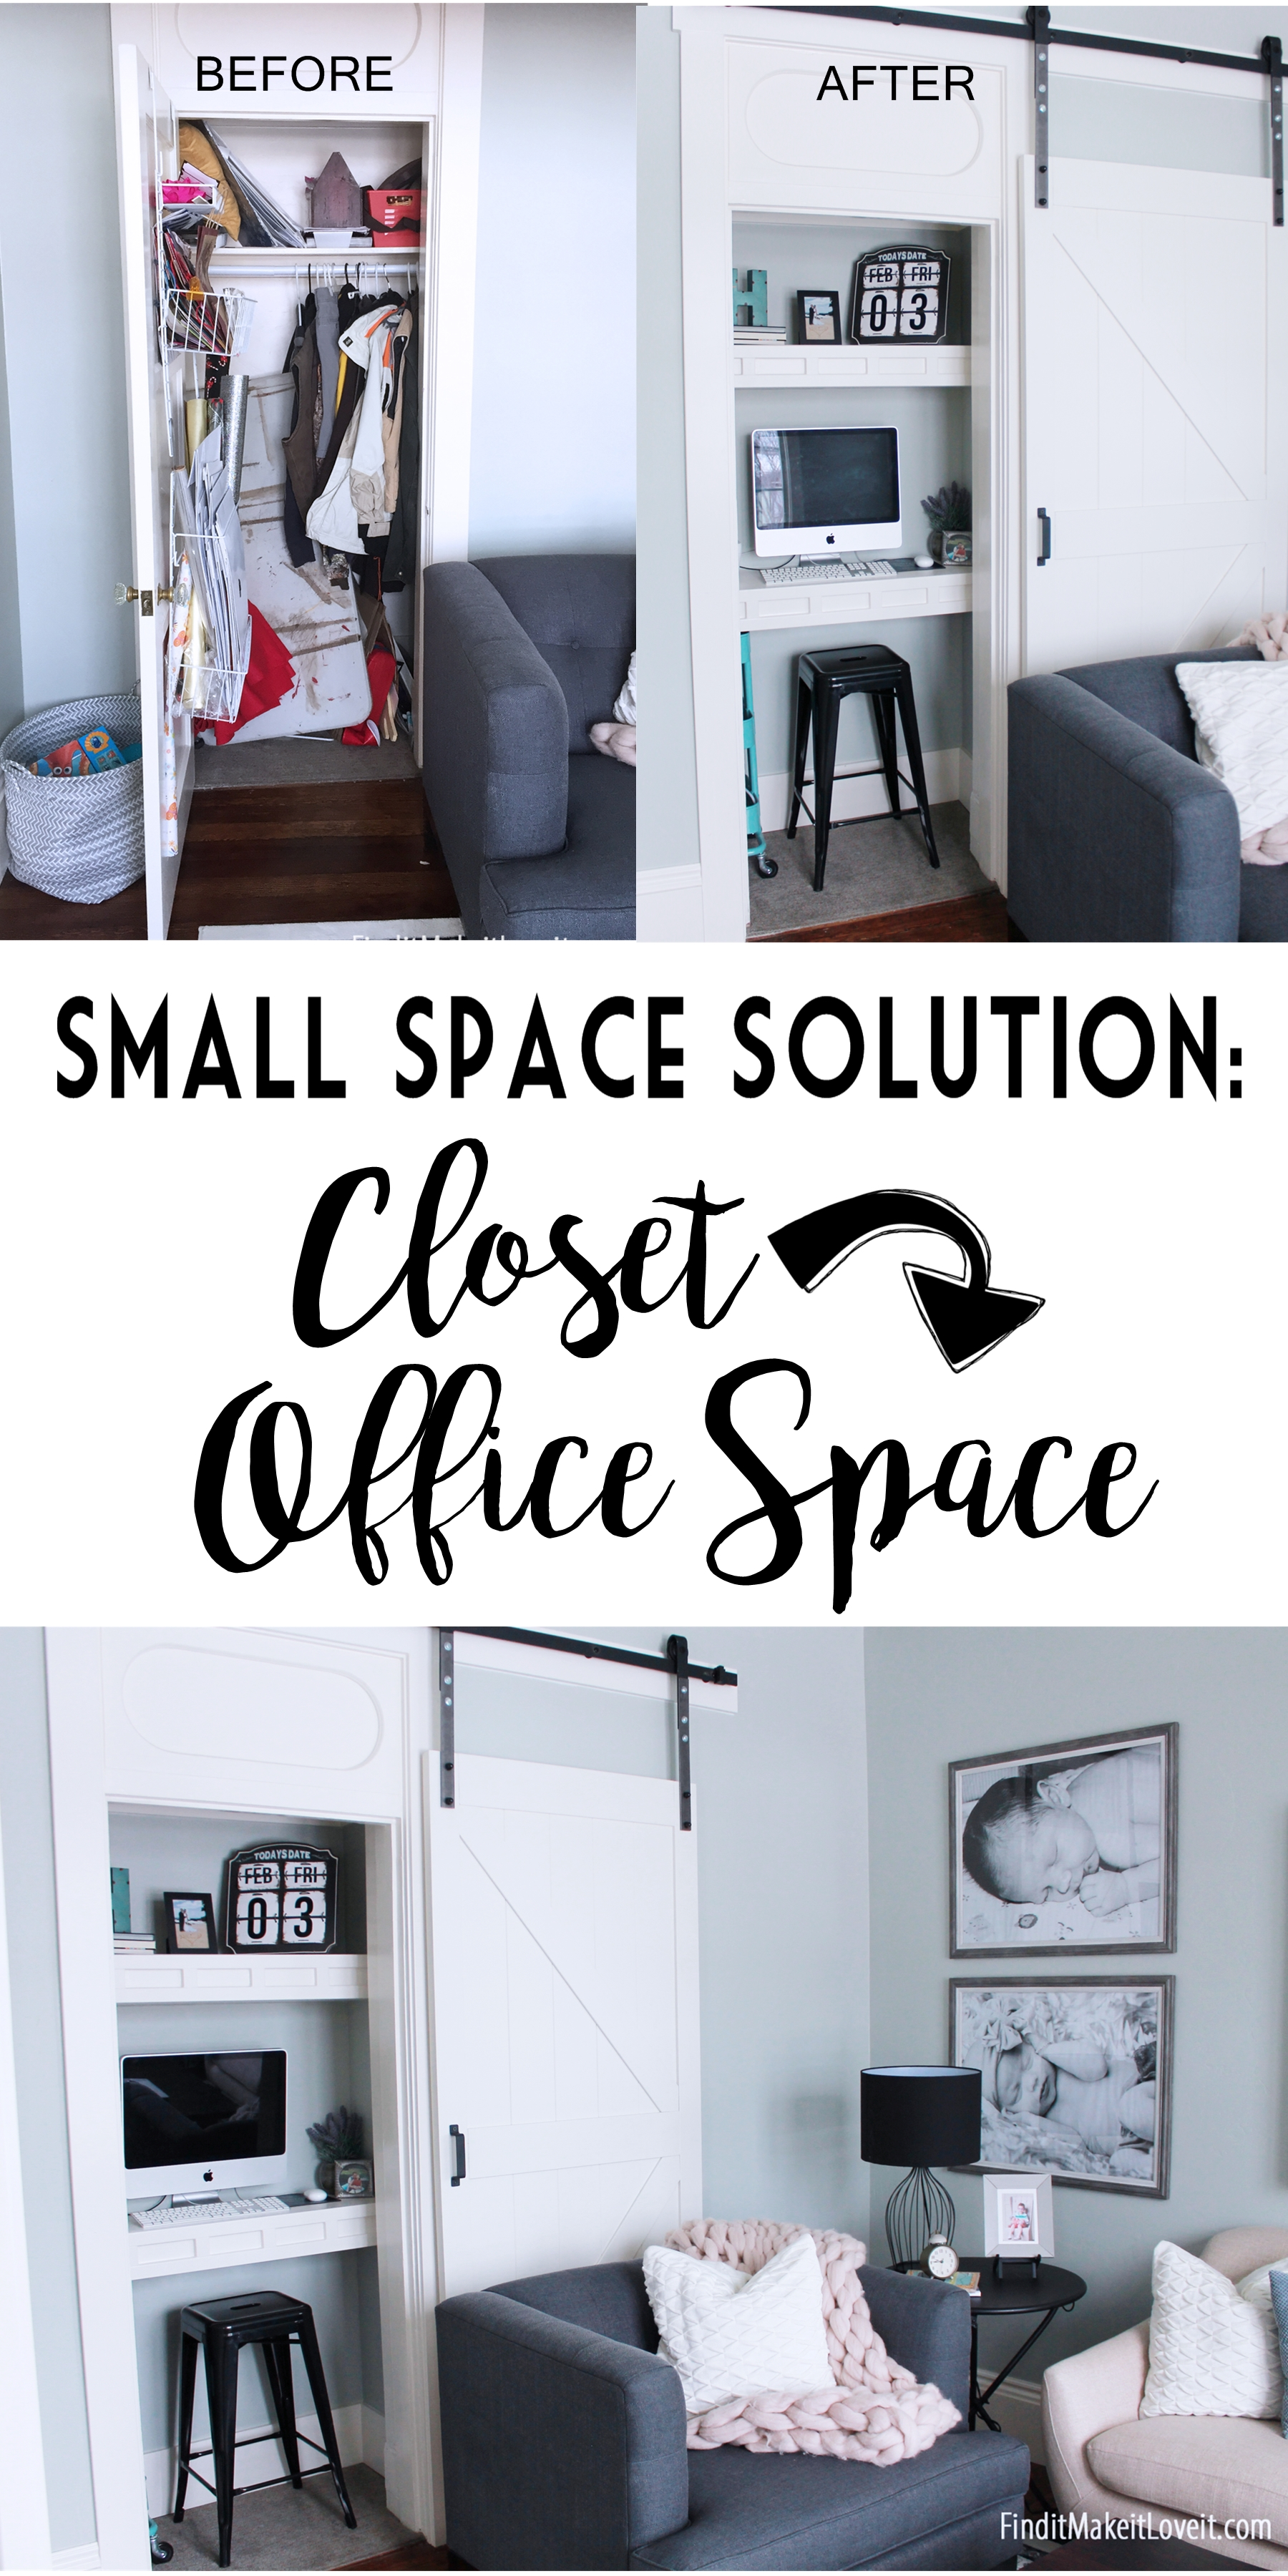 Small space solution-a closet turned into a functional office space. Quick weekend project!